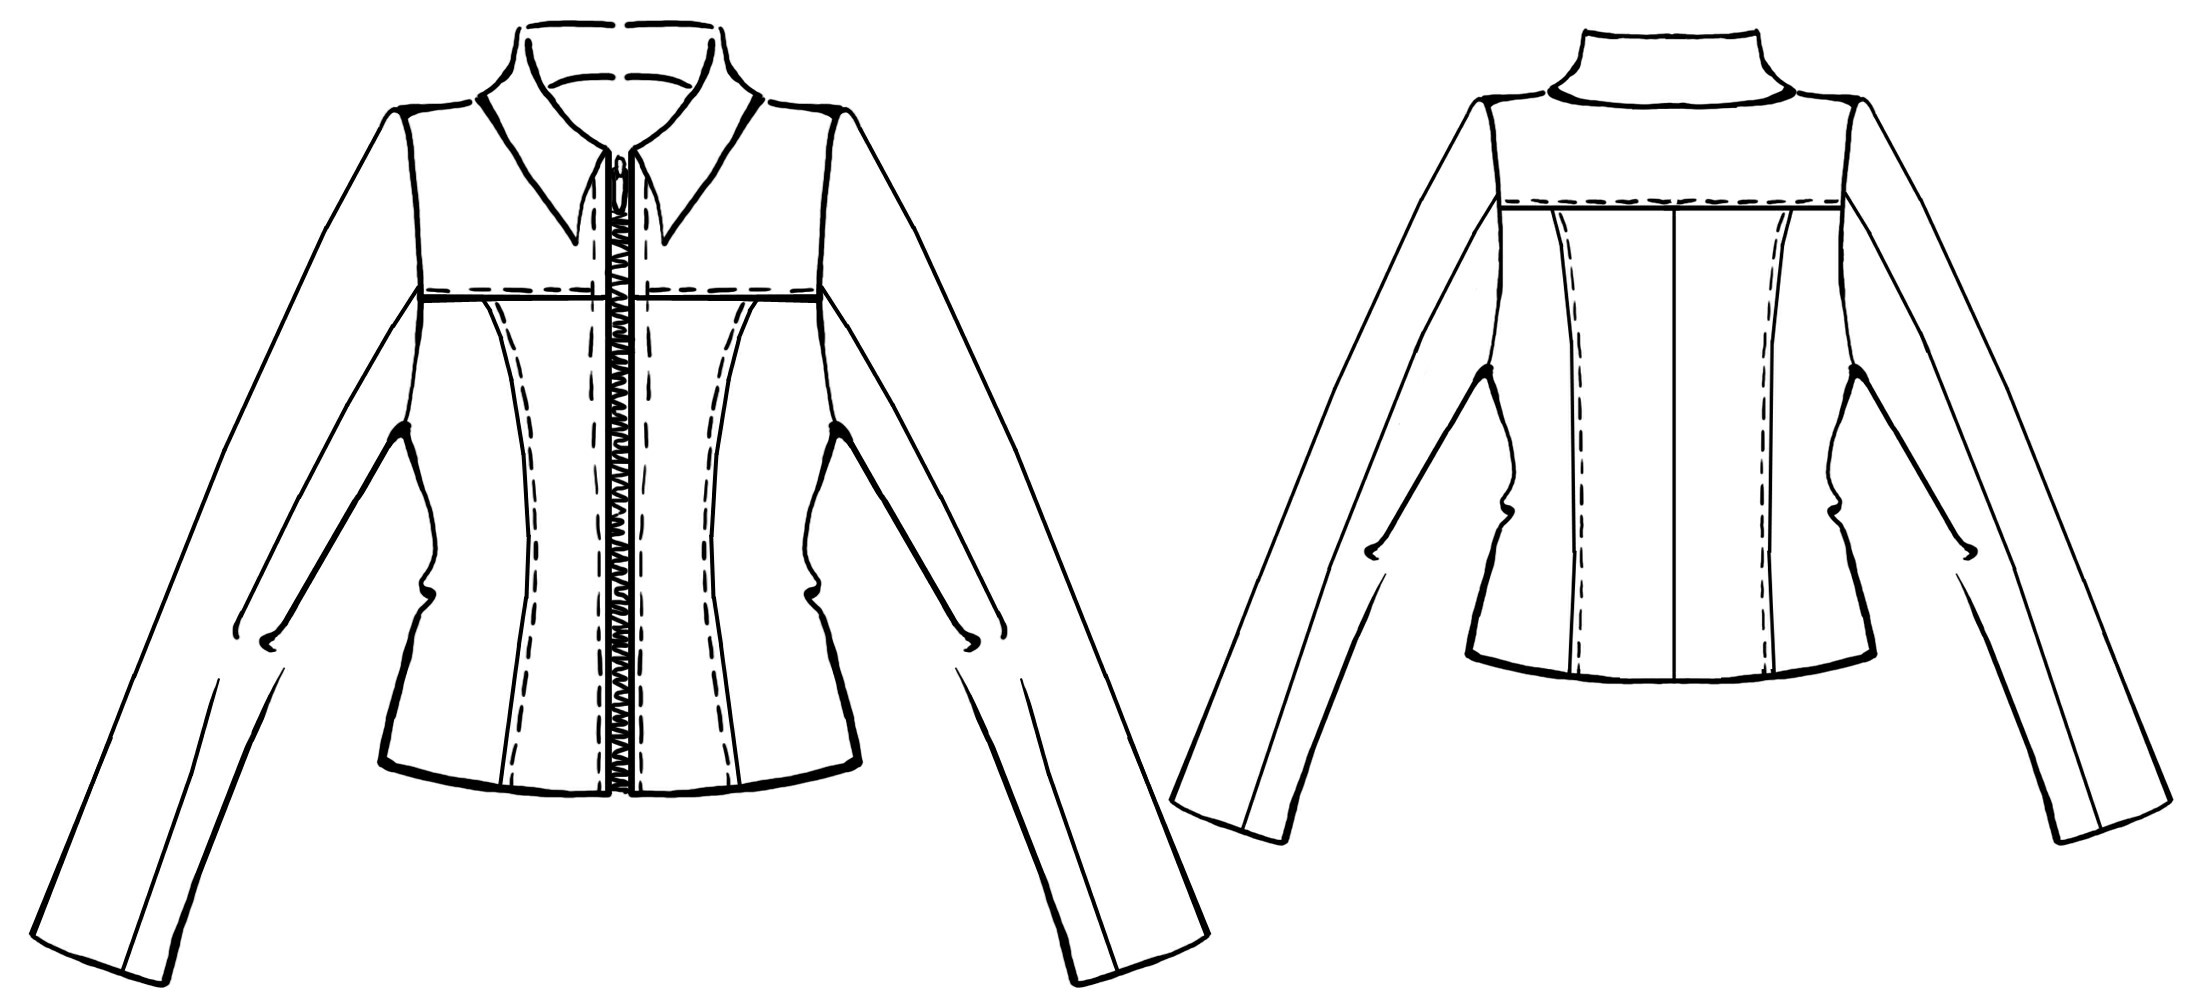 Leather Jacket - Sewing Pattern #5321. Made-to-measure sewing ...